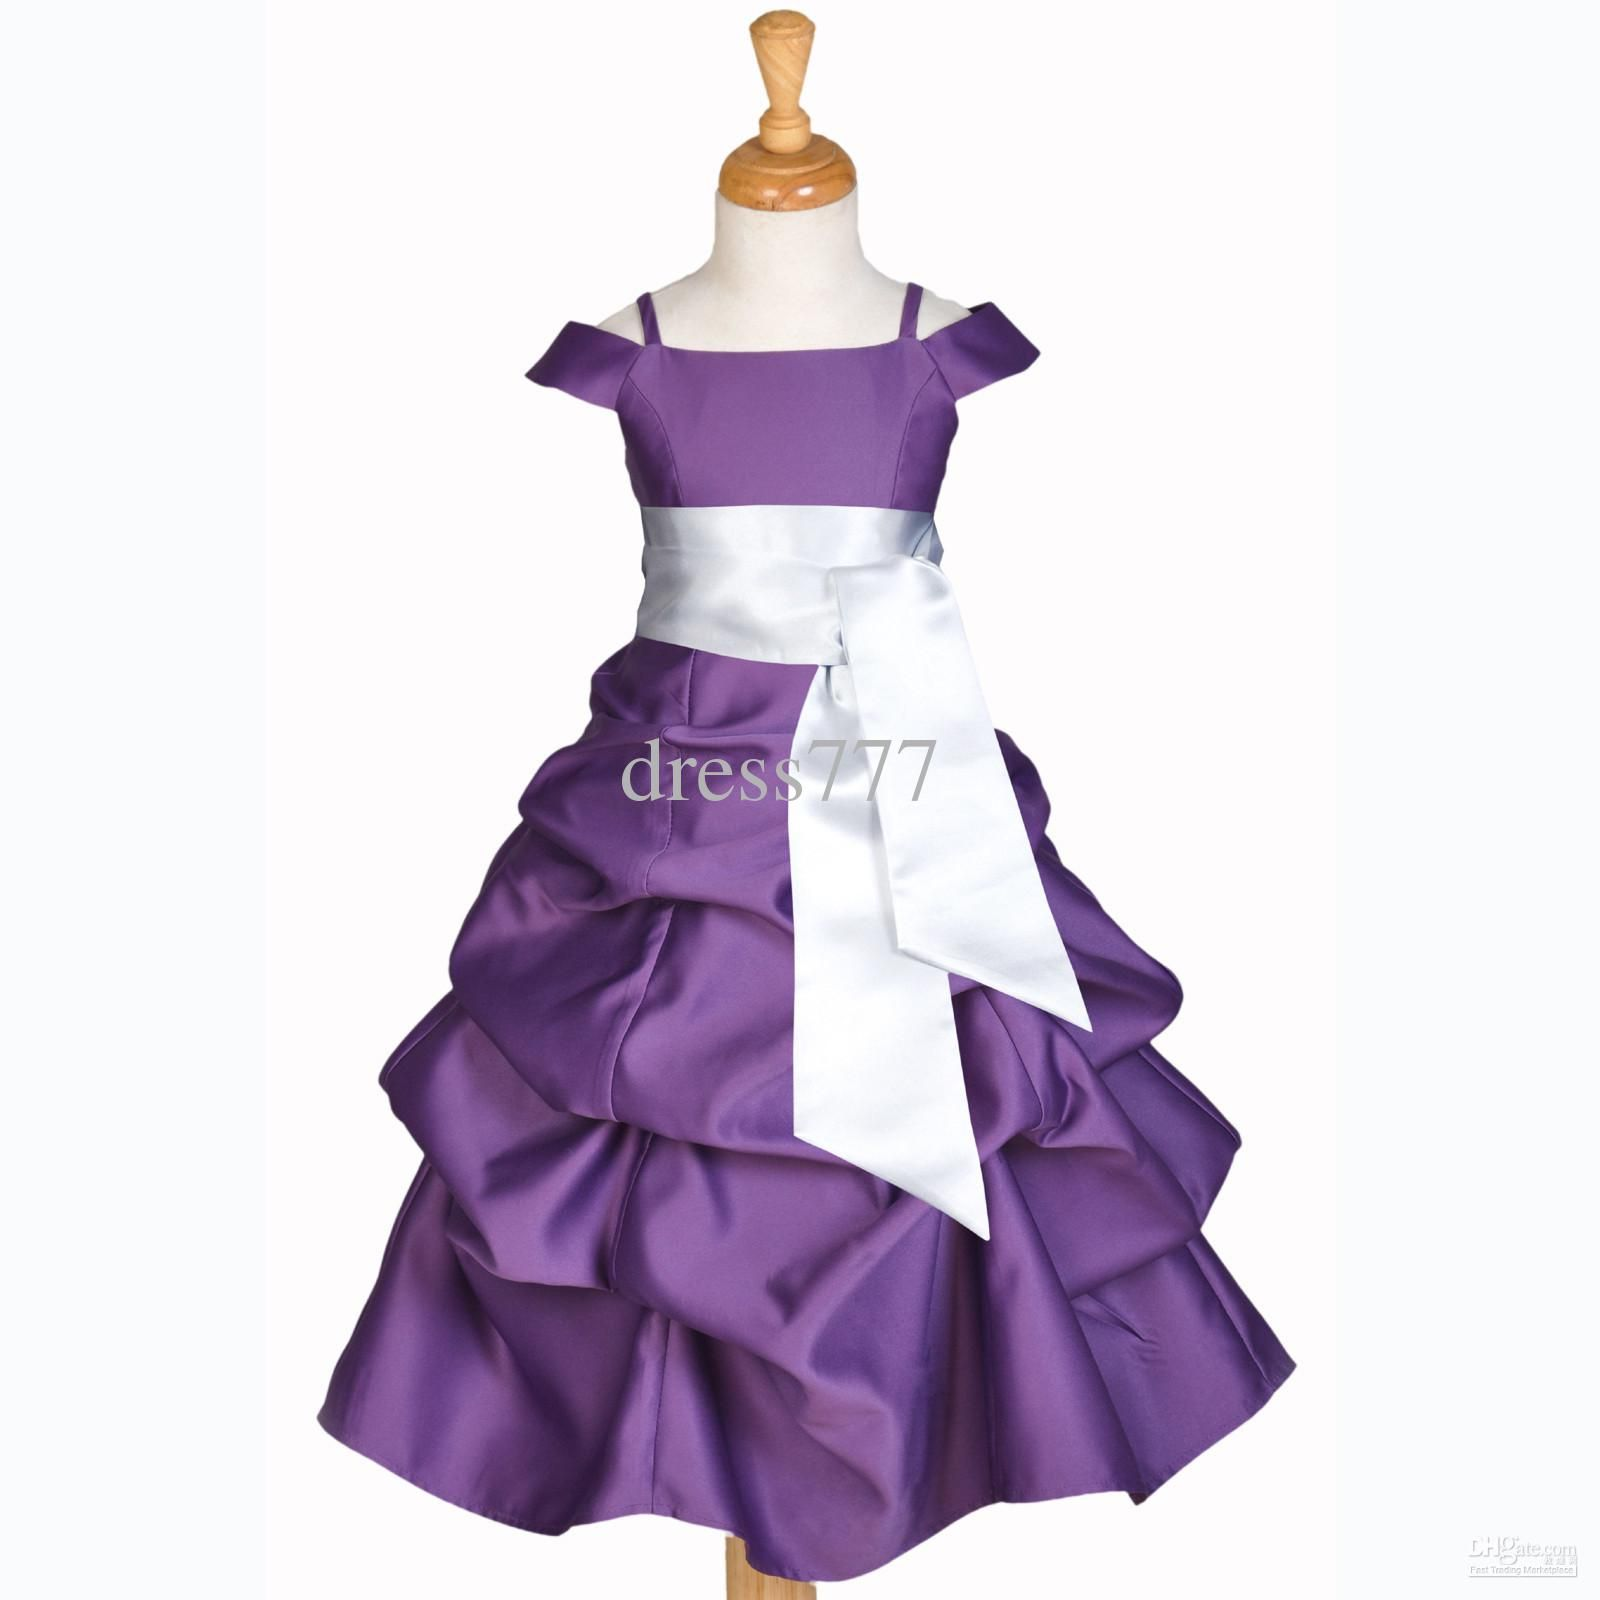 Purple and white wedding dresses | Purple Dresses | Pinterest